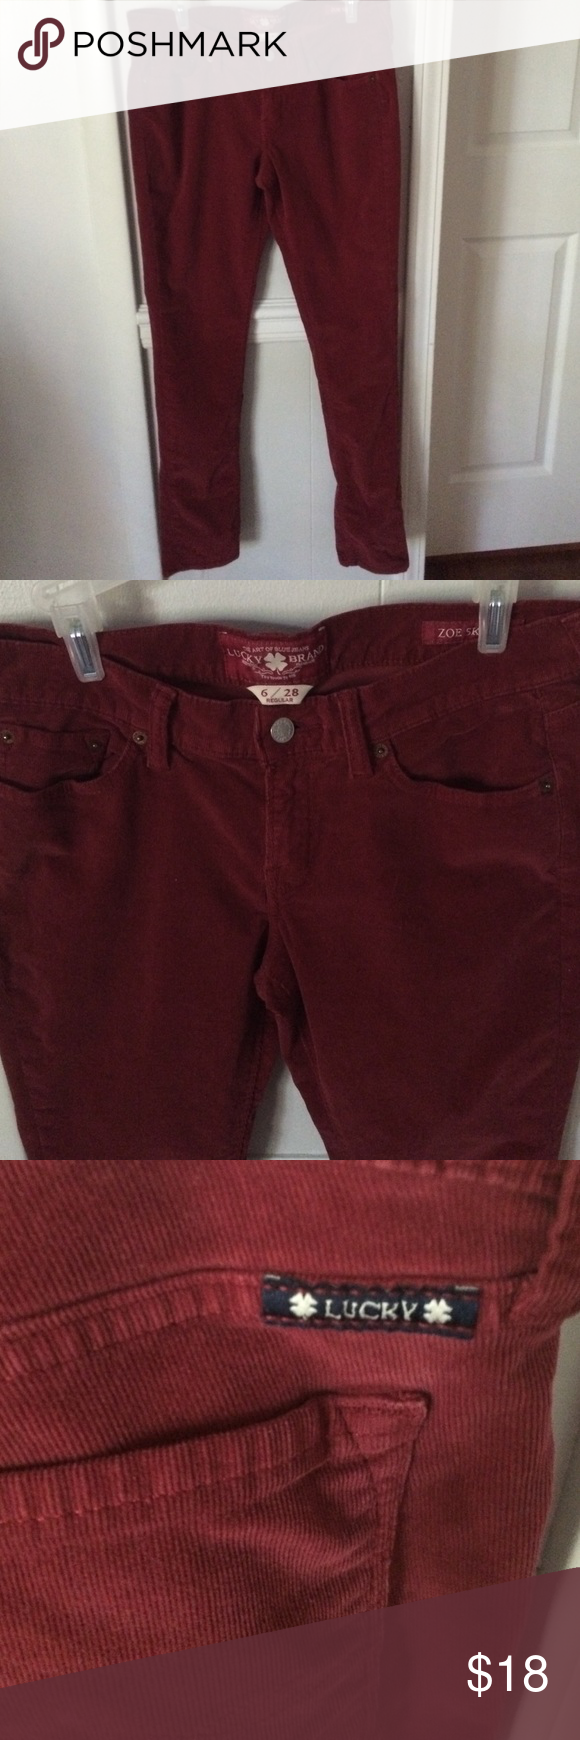 Lucky Brand Cords Great Condition Zoe Skinny Style Beautiful Dark Rust Color